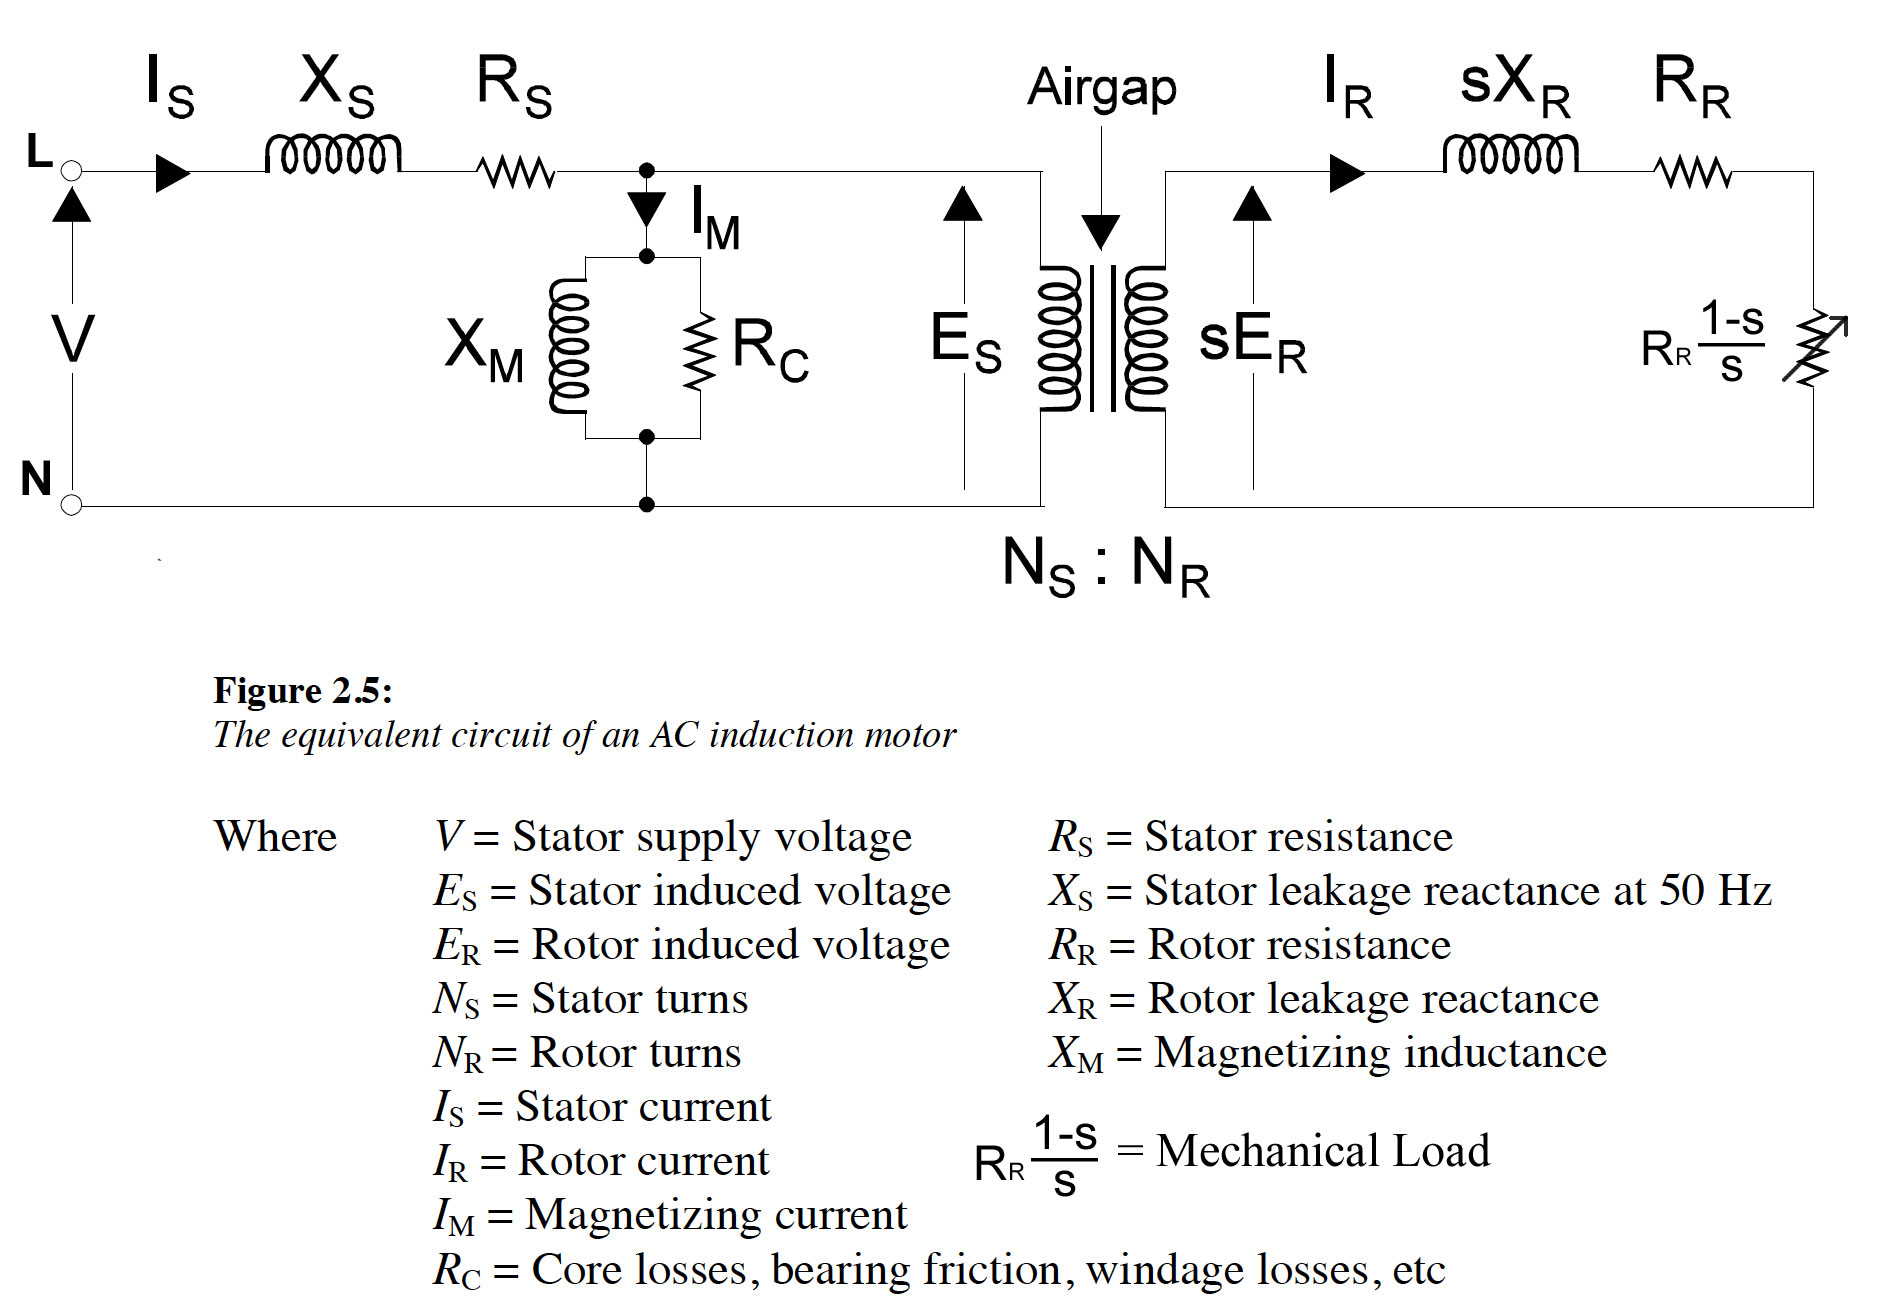 single phase voltage drop formula 2001 saturn sl stereo wiring diagram when load increases in rotor of induction motor how does